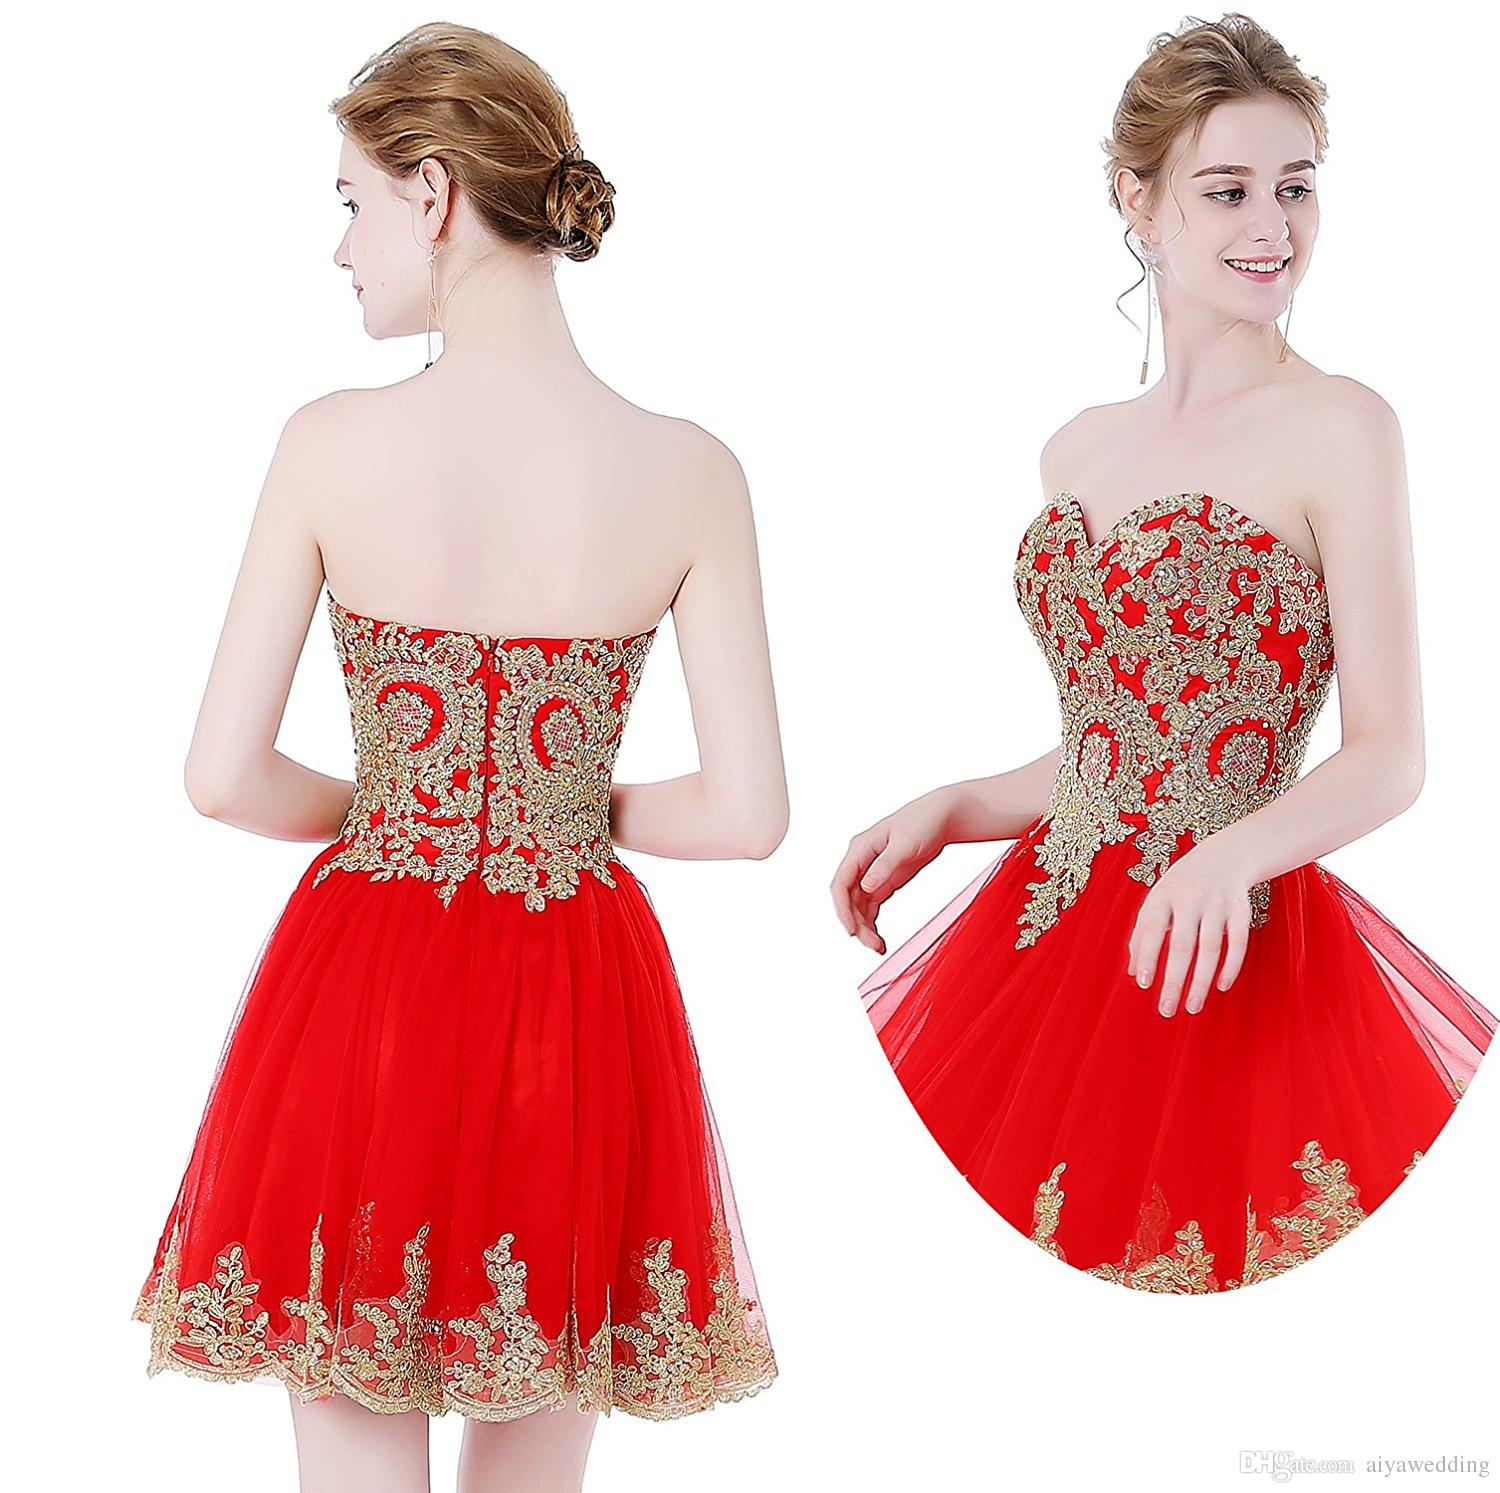 2019 Sweetheart Gold Lace Appliques Homecoming Dresses Short Tulle A Line Graduation Wear Cocktail Party Gwon